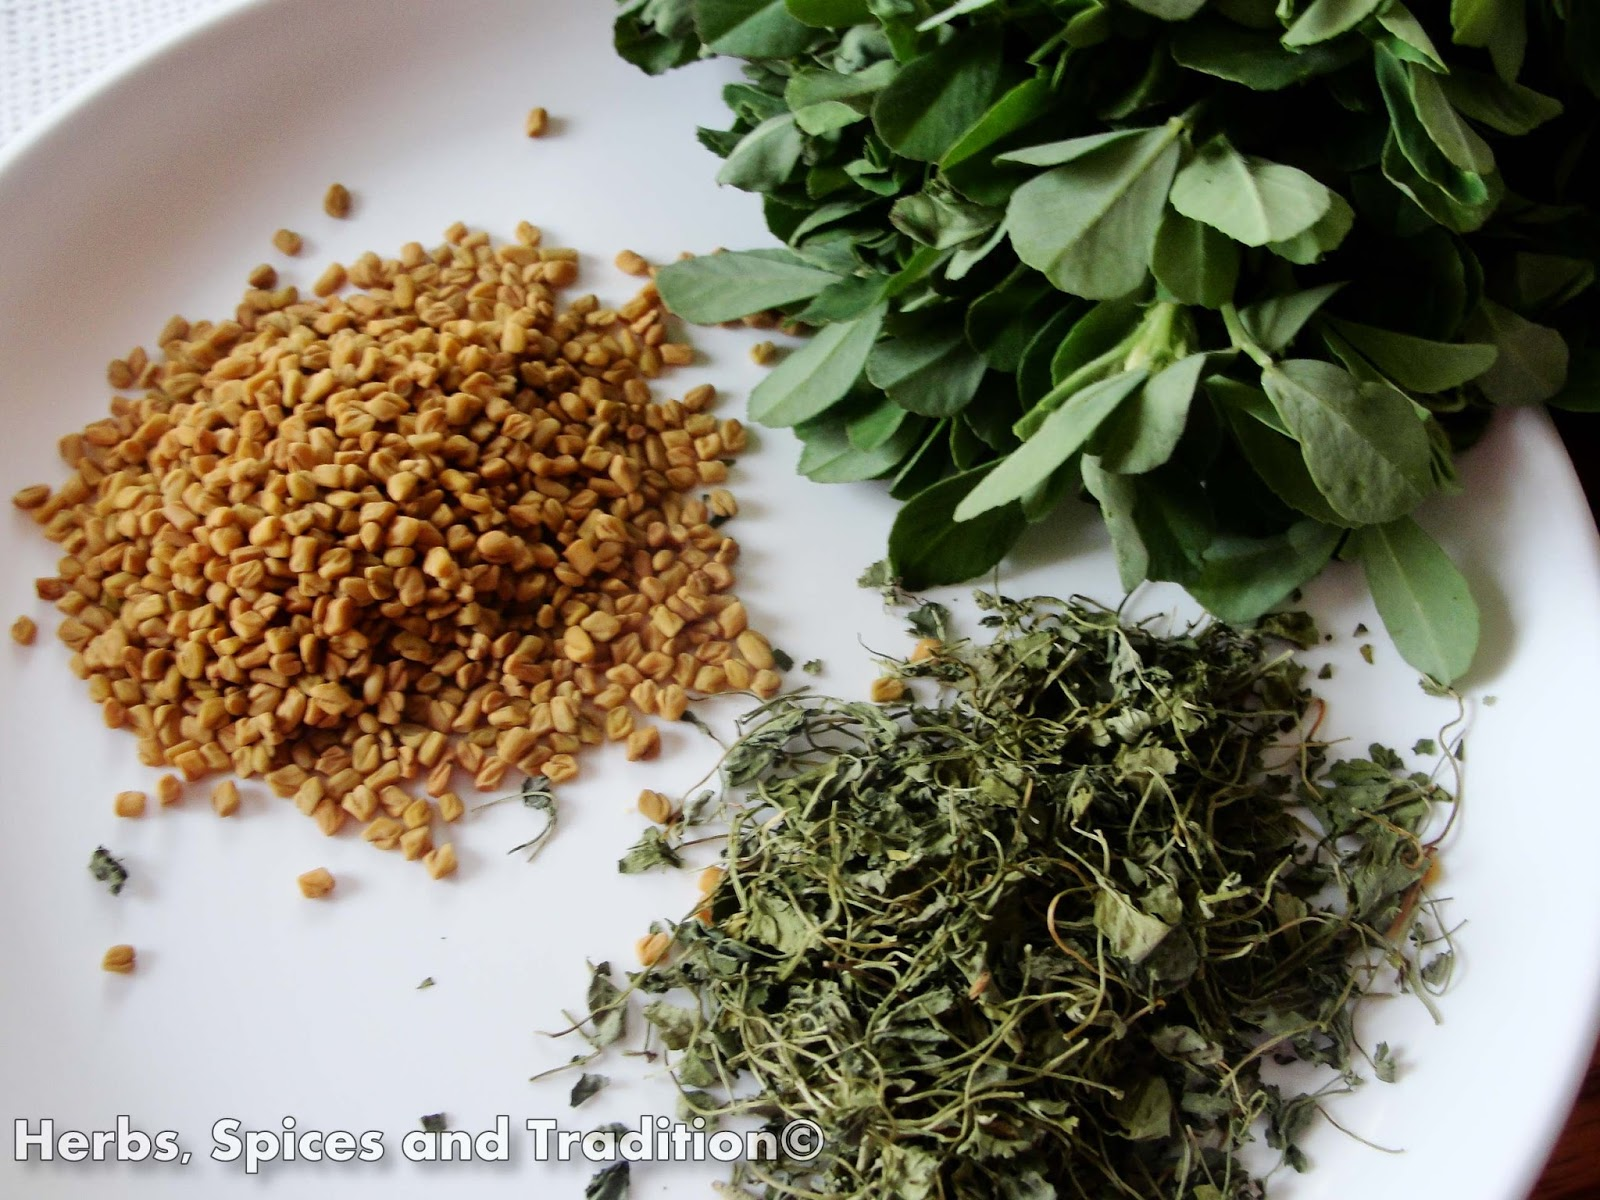 how to use methi seeds for diabetes